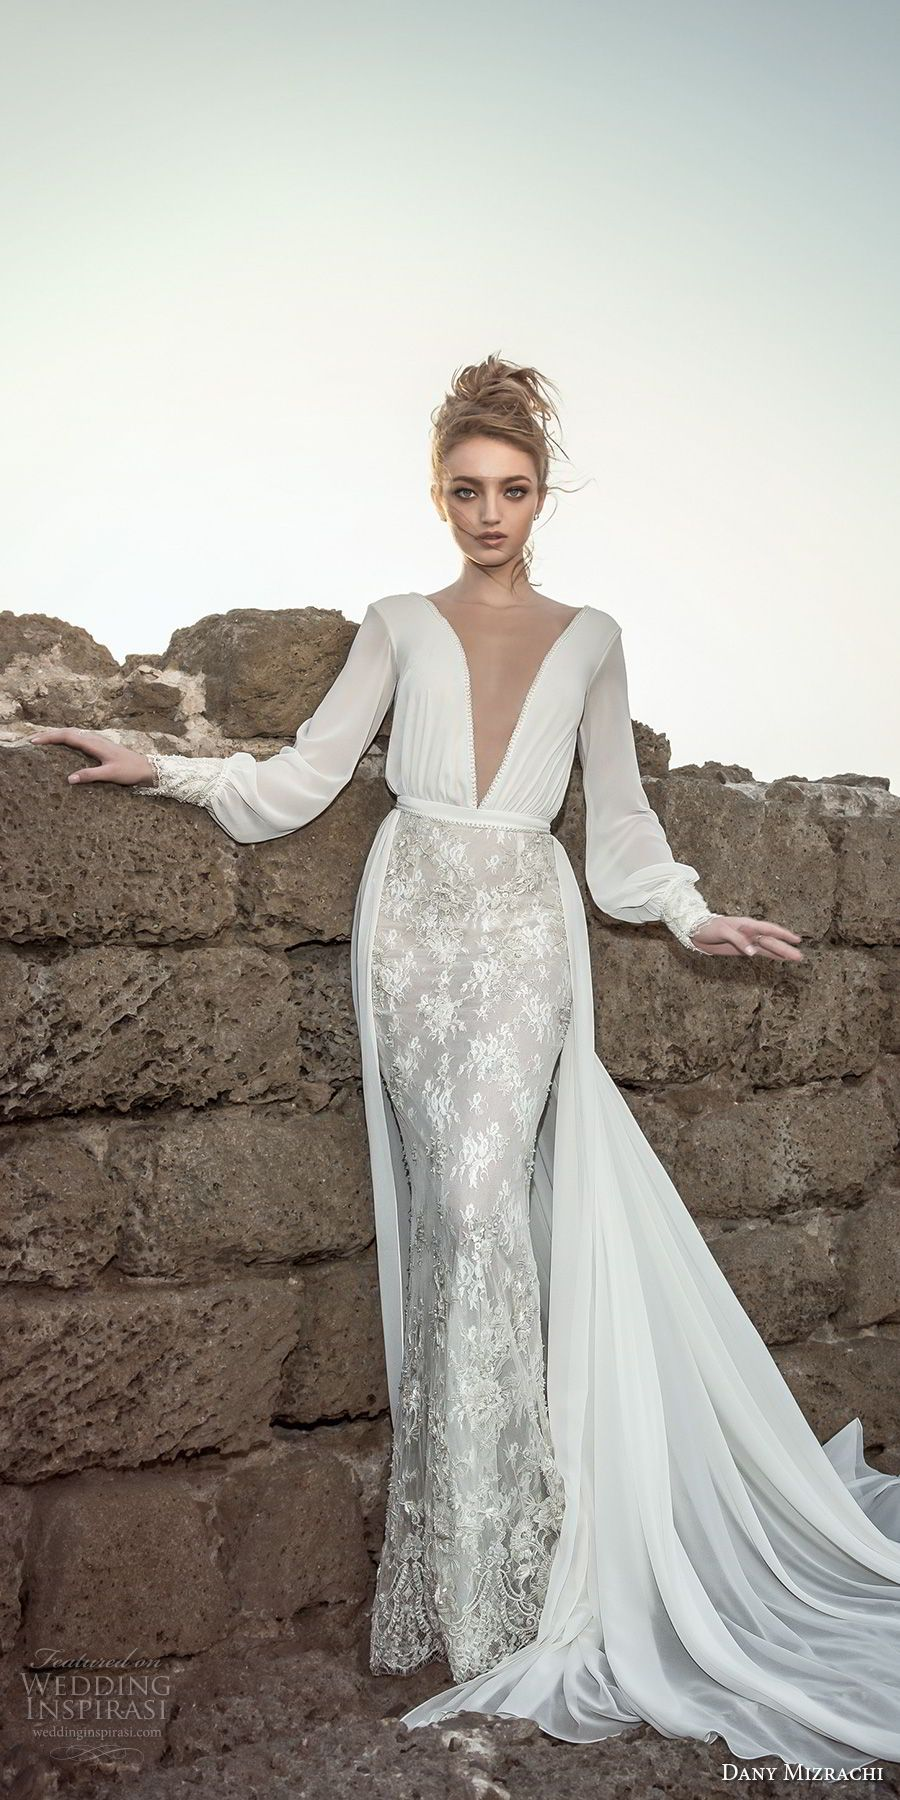 Dany mizrachi wedding dresses wedding dress